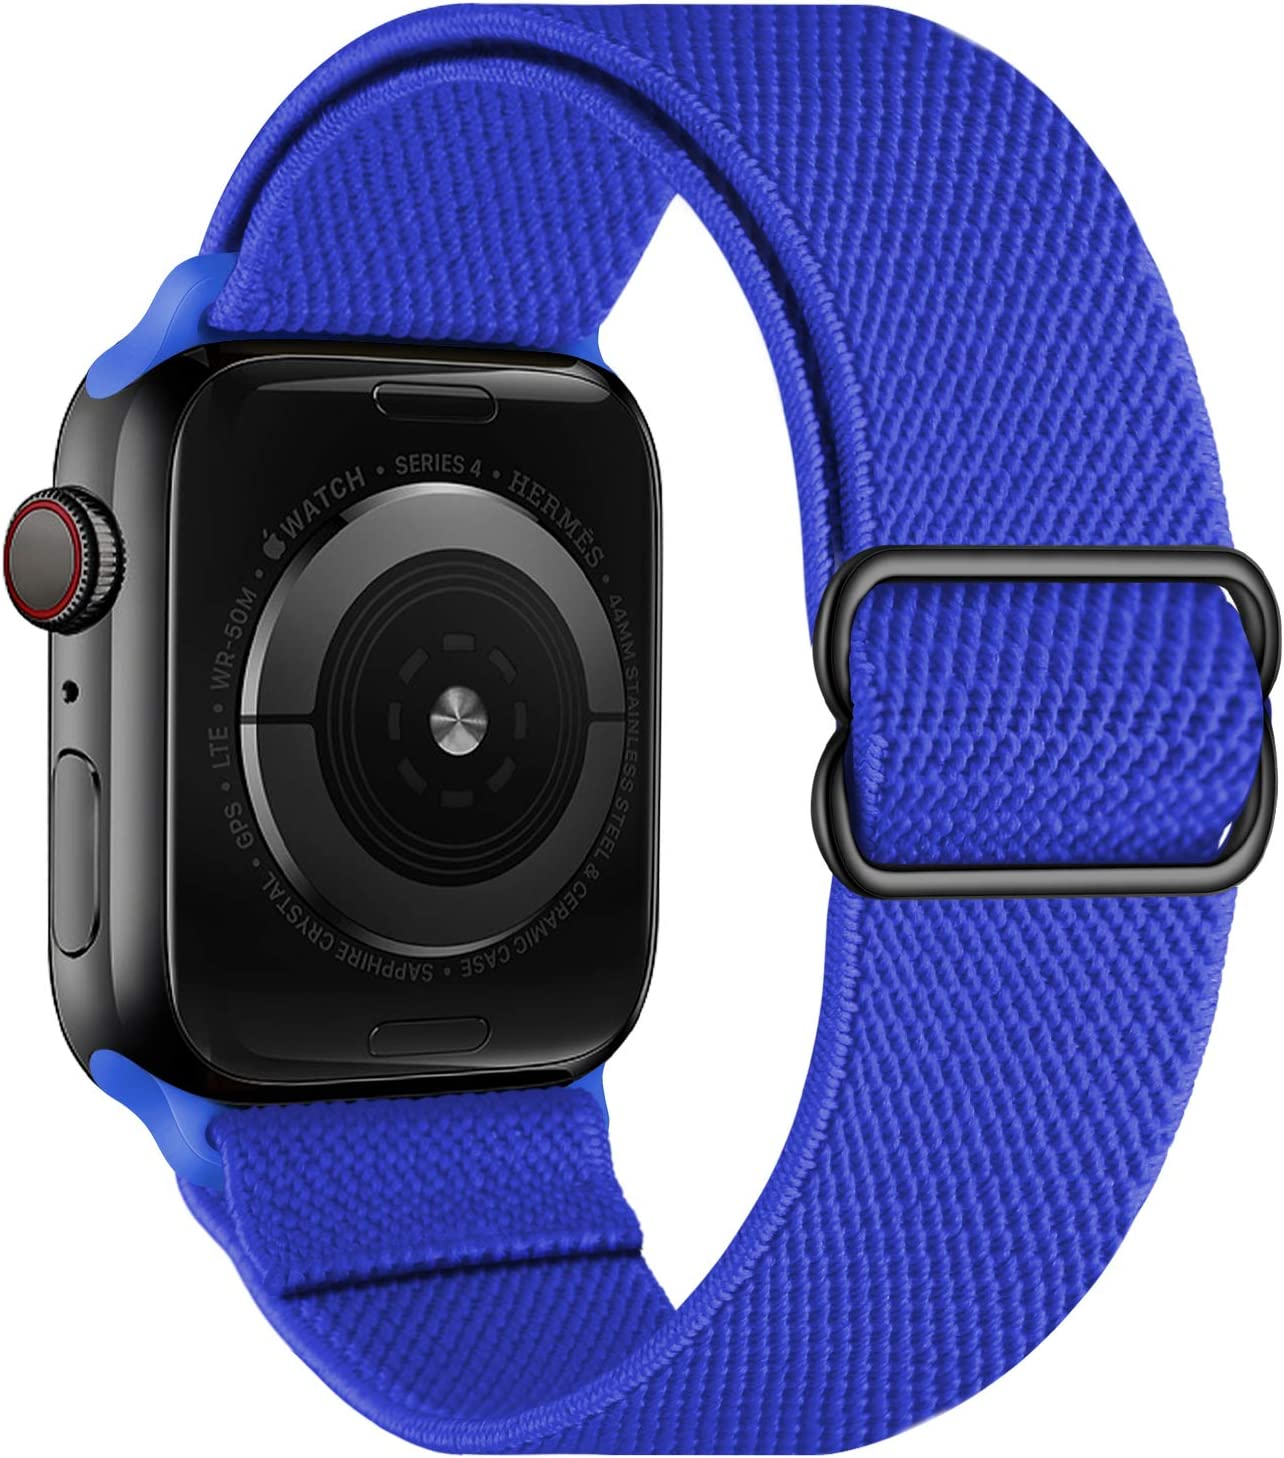 OXWALLEN Stretchy Nylon Solo Loop Compatible with Apple Watch Bands 42mm 44mm, Adjustable Elastic Braided Stretches Women Men Strap for iWatch SE Series 6/5/4/3/2/1,Royal Blue